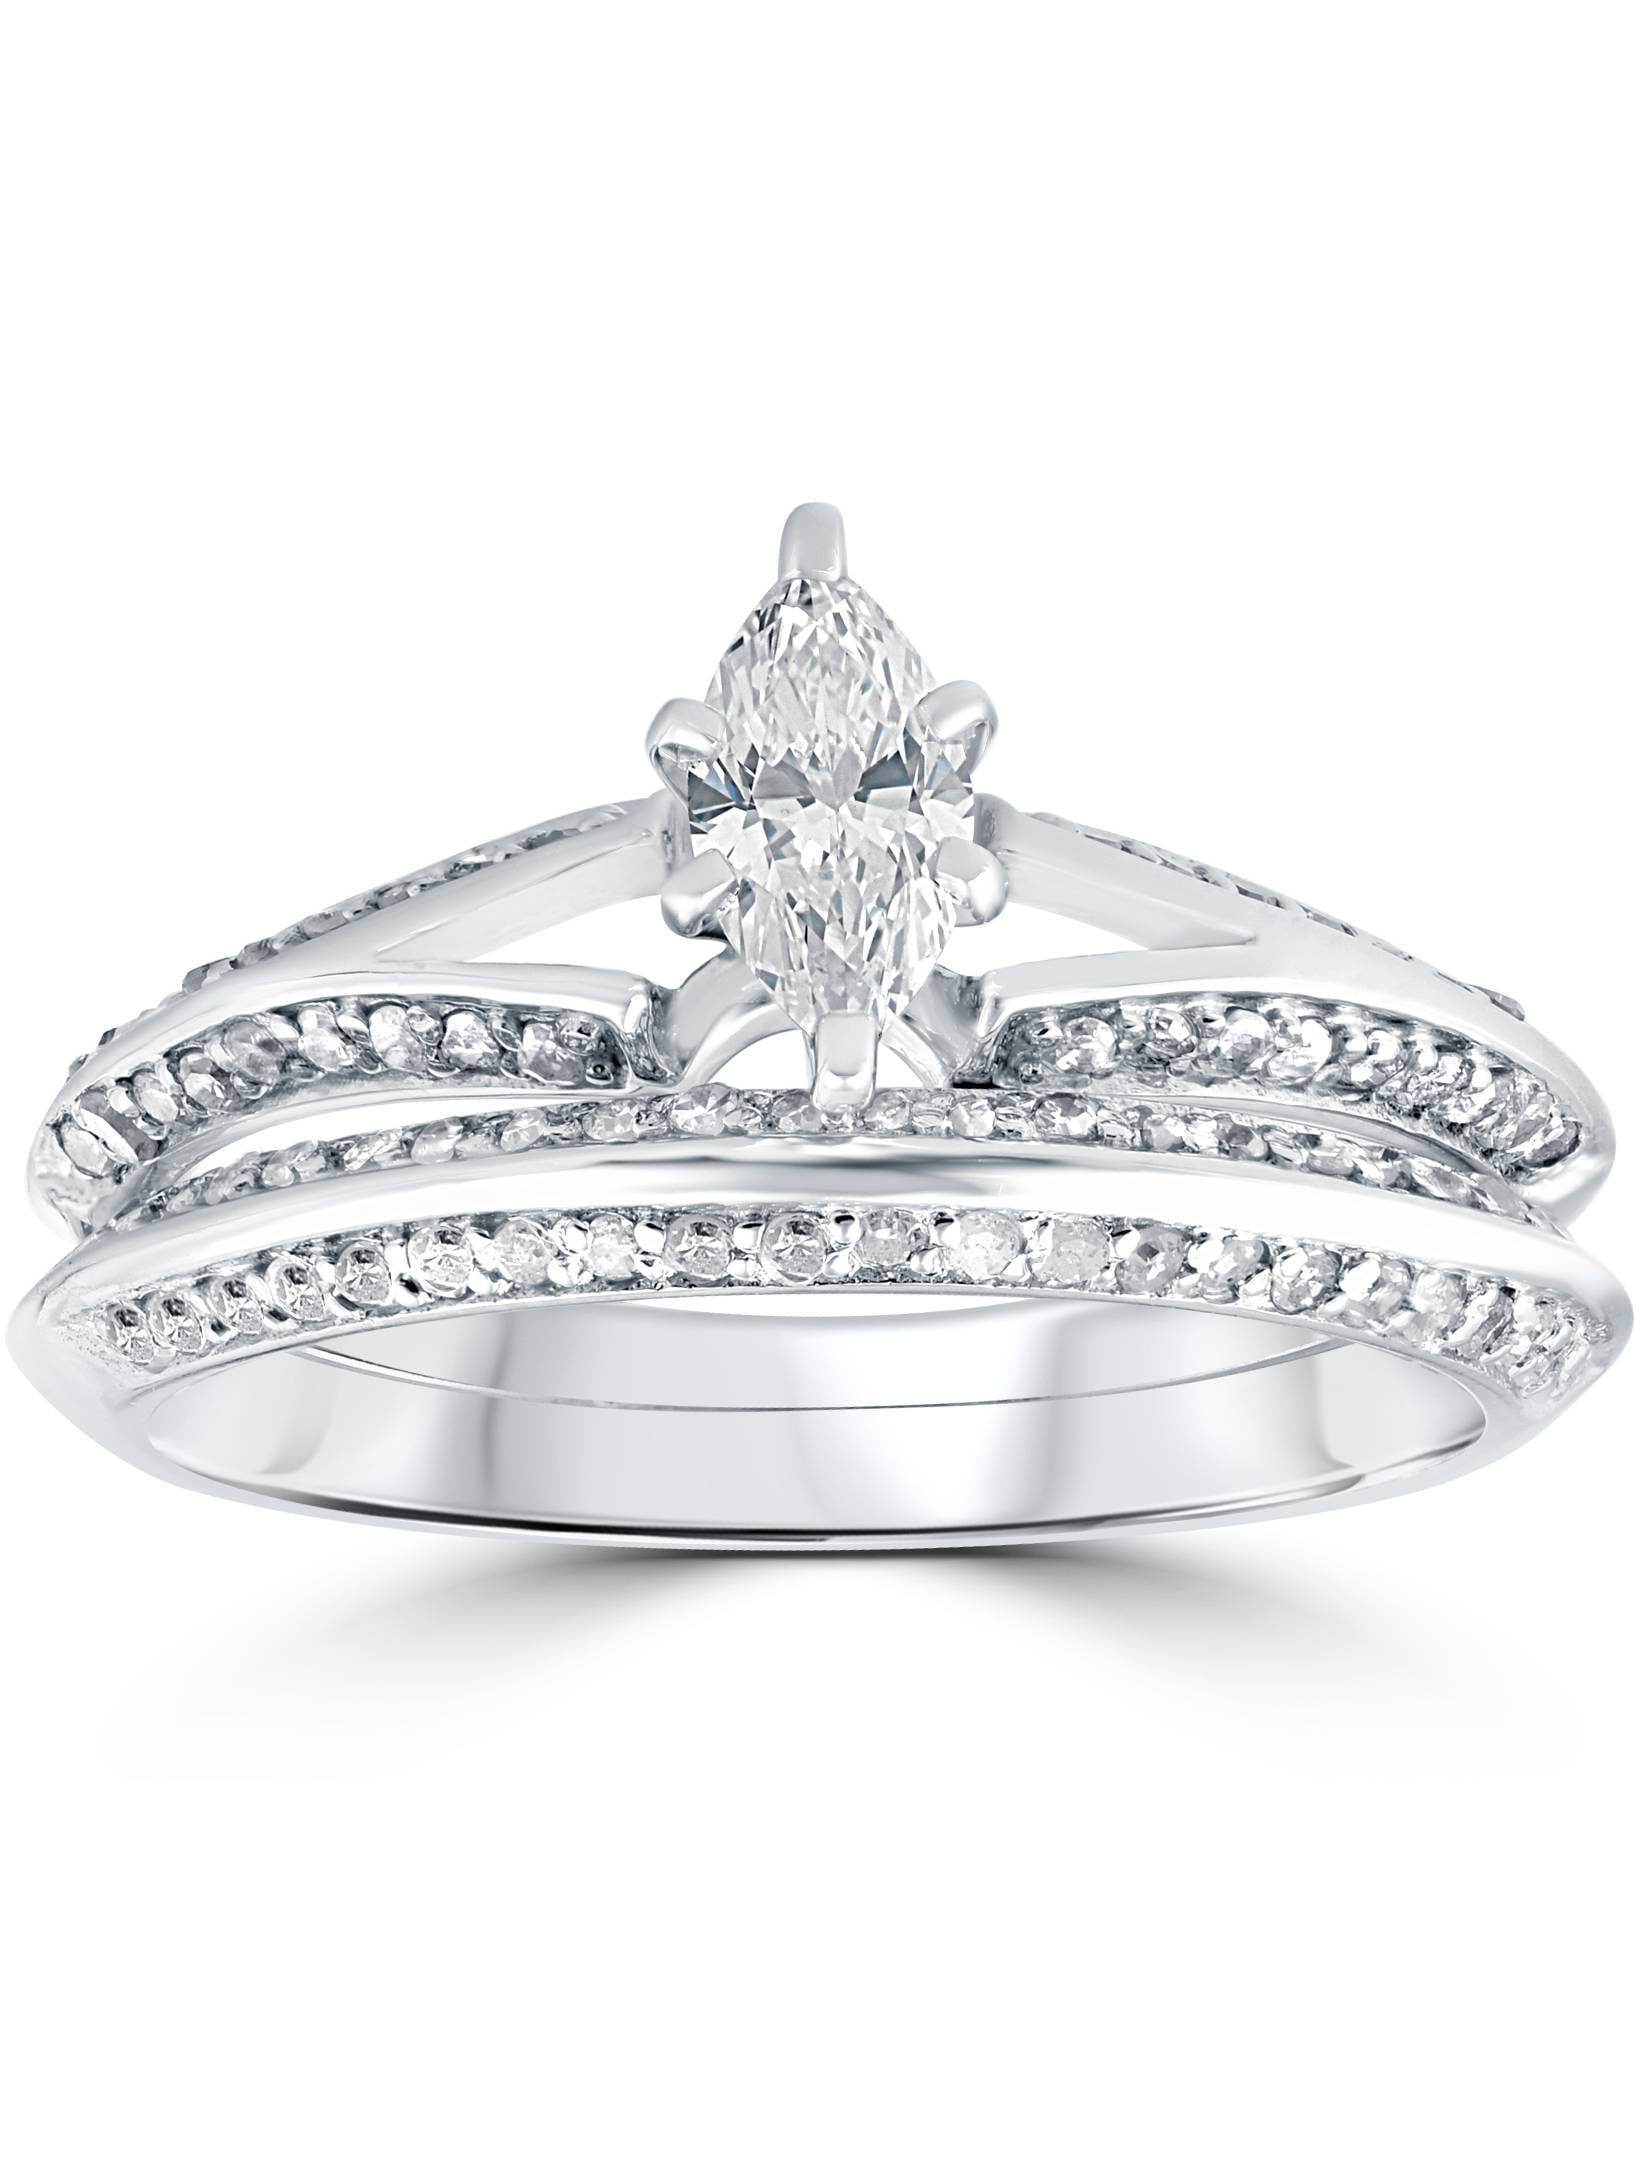 3 4 ct Marquise Diamond Engagement Wedding Ring Set 14k White Gold by Pompeii3